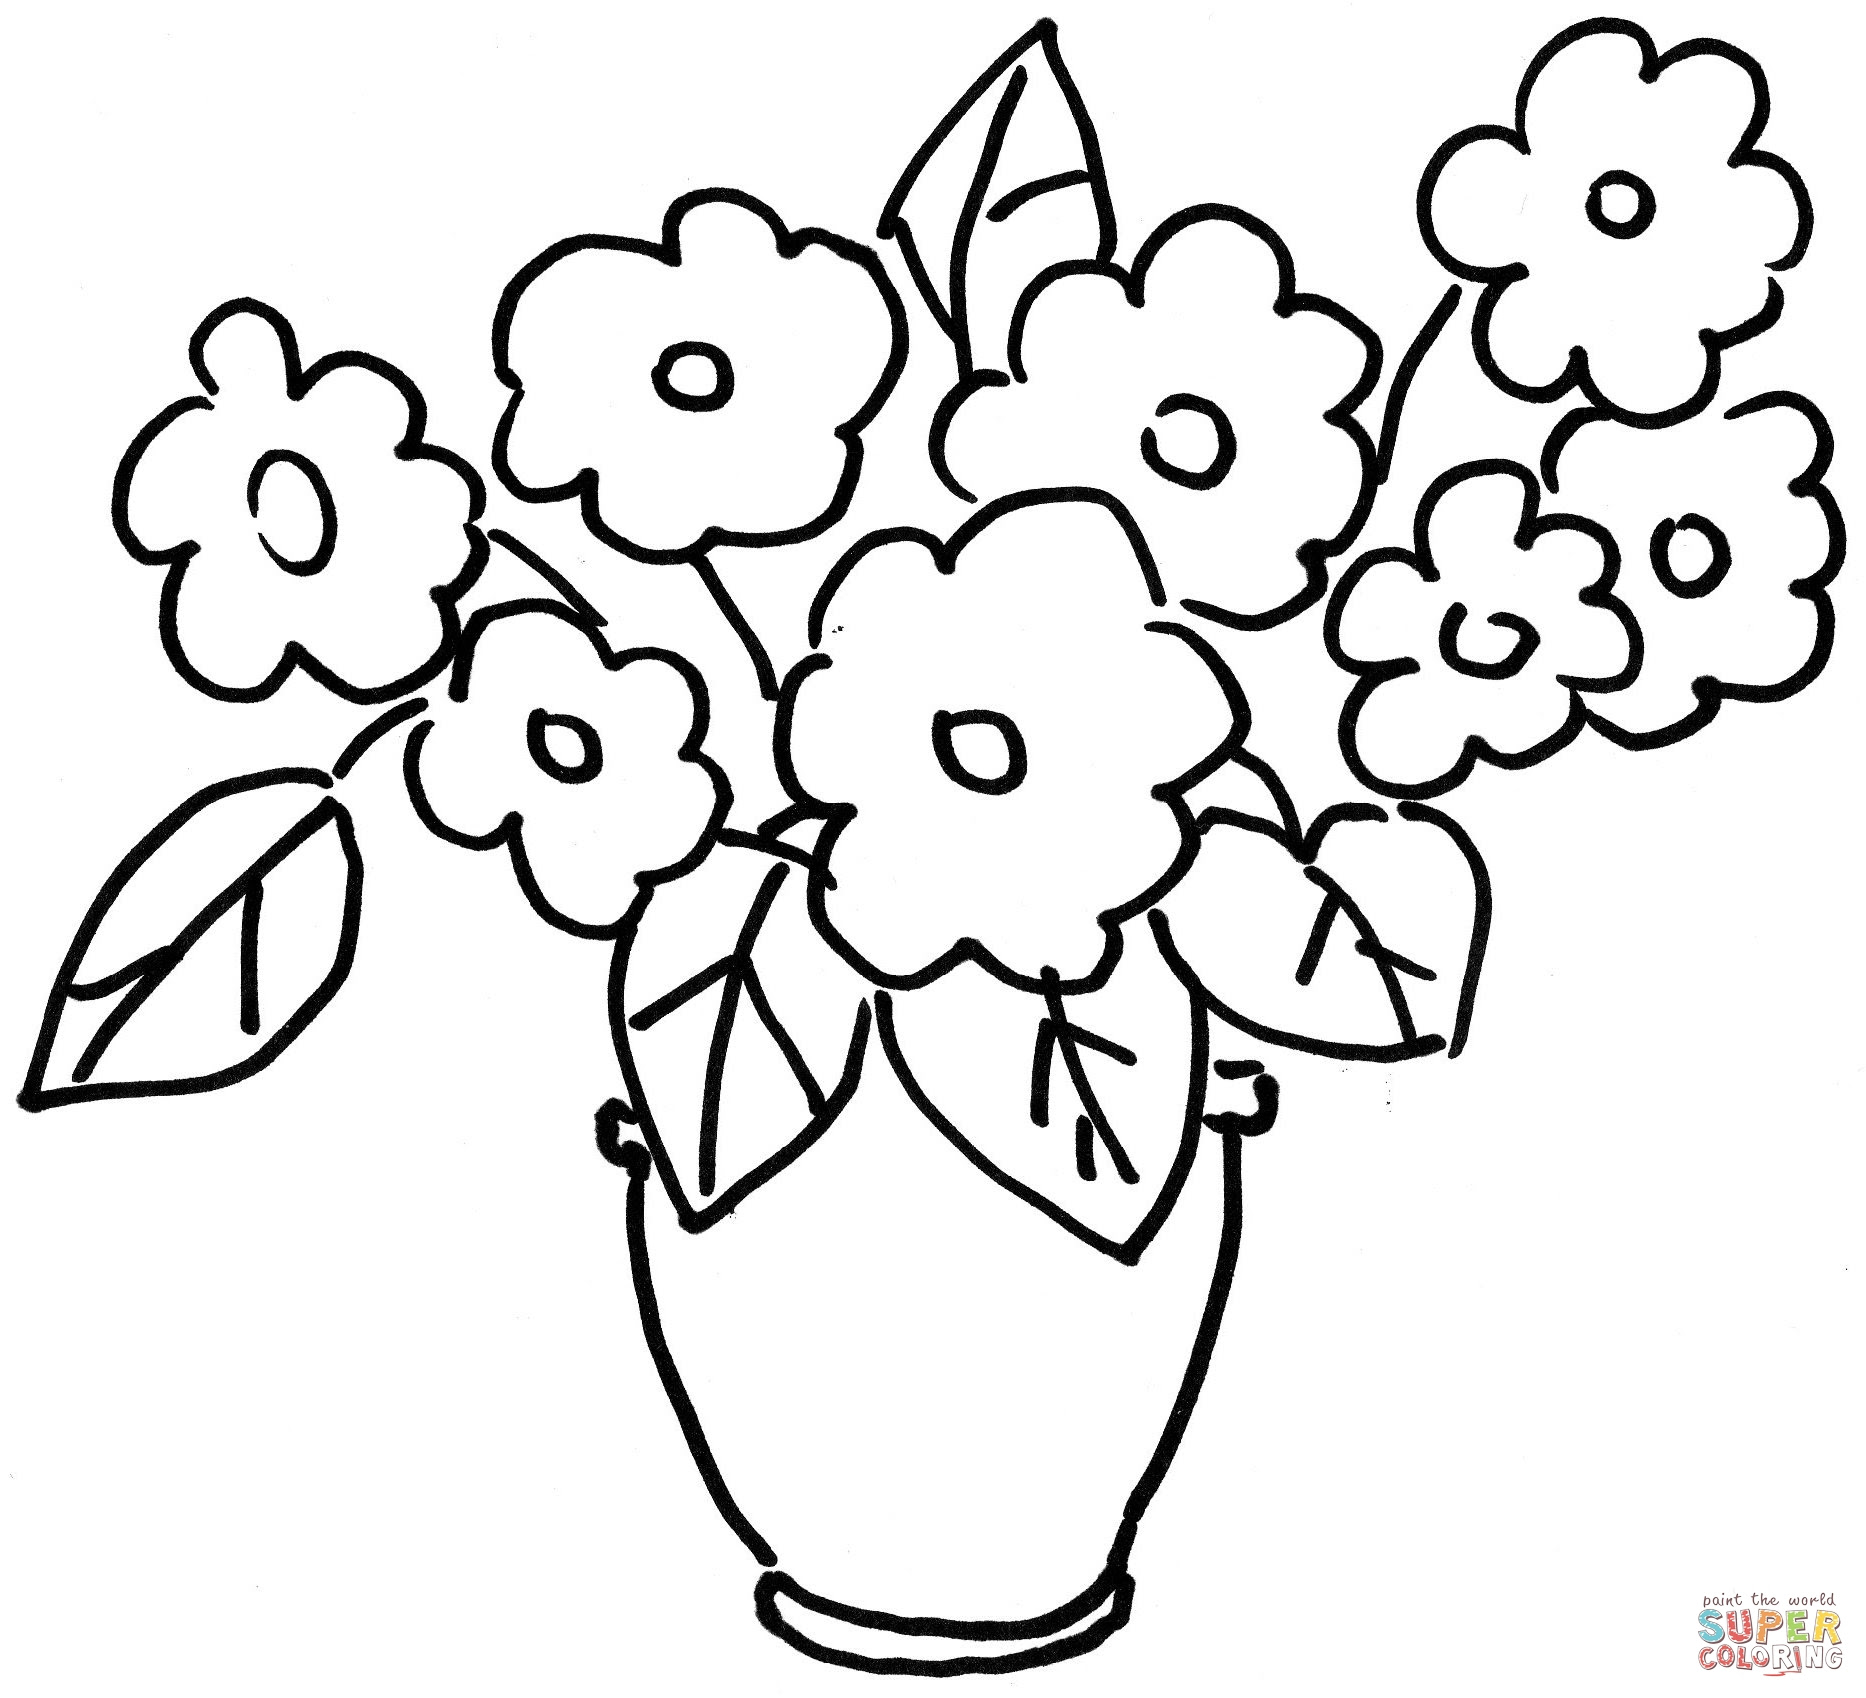 Pansy Violets Flower Coloring Page Free Printable Coloring Pages